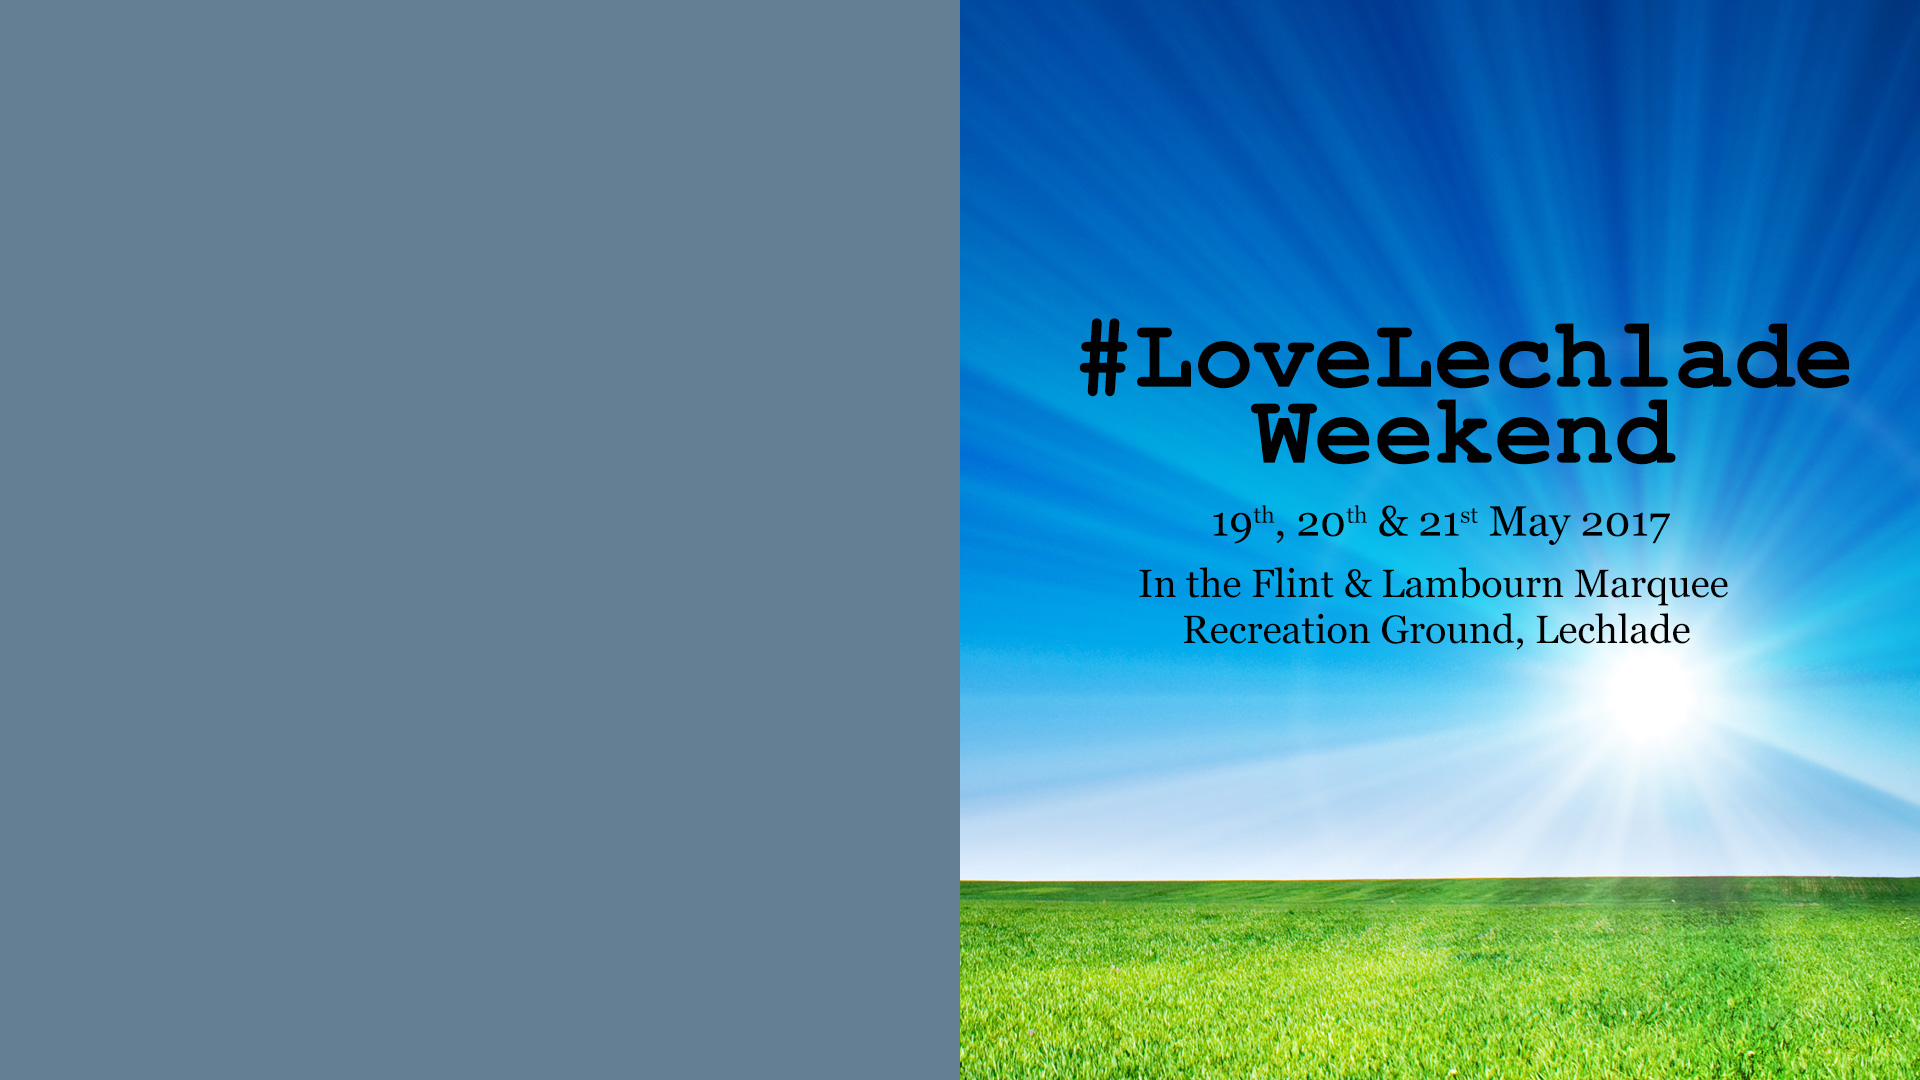 Love Lechlade, hosted by Flint & Lambourn Marquees Ltd